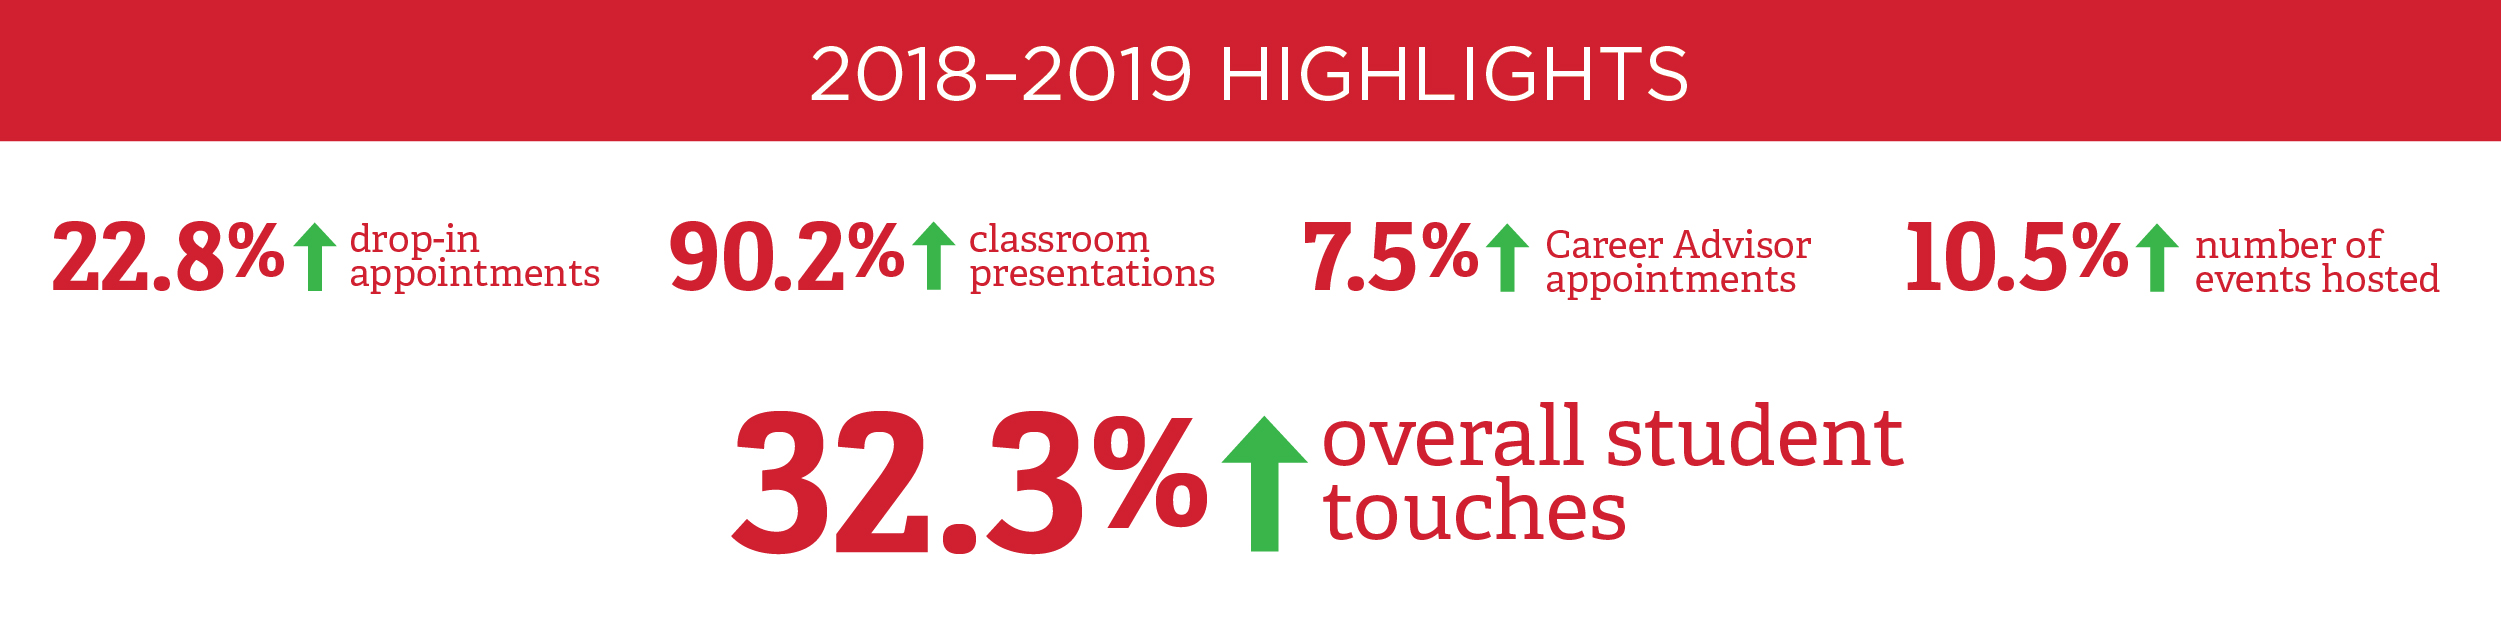 2018–2019 Highlights: 22.8% increase in drop-in appointments. 90.2% increase in classroom presentations. 7.5% increase in Career Advisor appointments. 10.5% increase in number of events hosted. 32.3% increase in overall student touches.